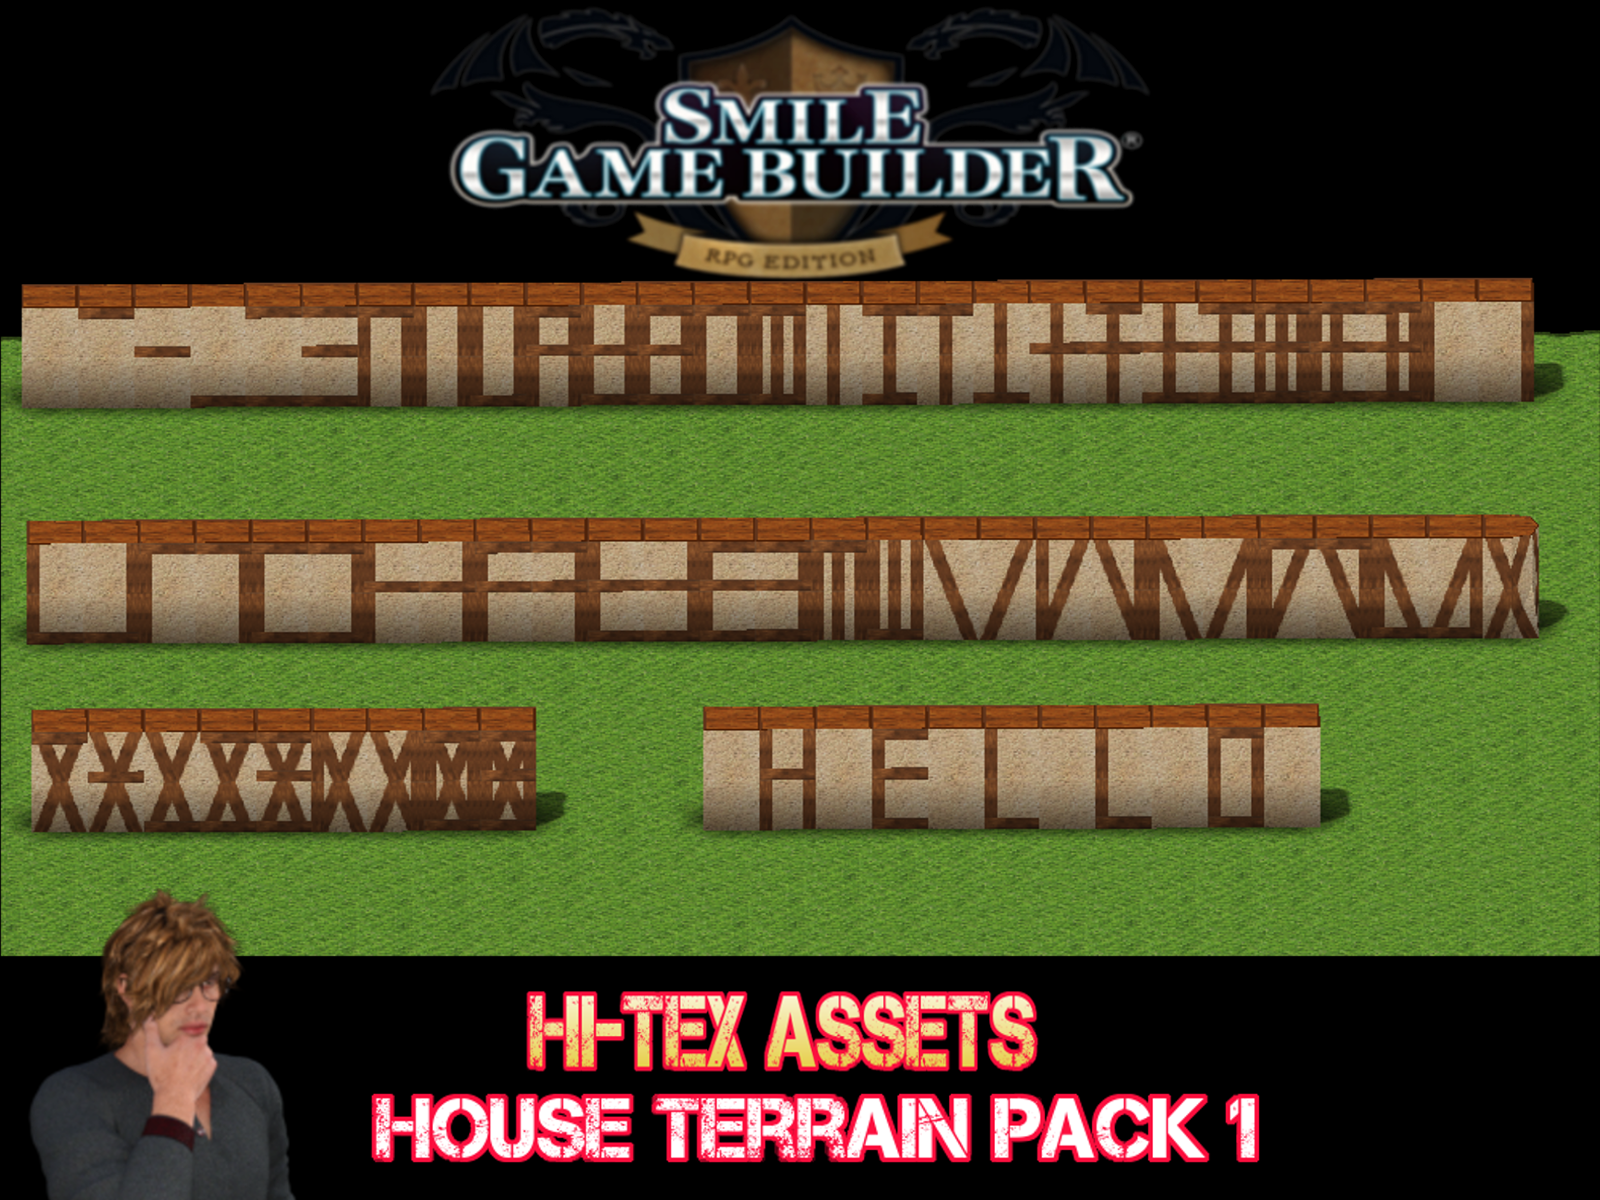 Hi-Tex House Terrain Pack 1 Being Released This Month